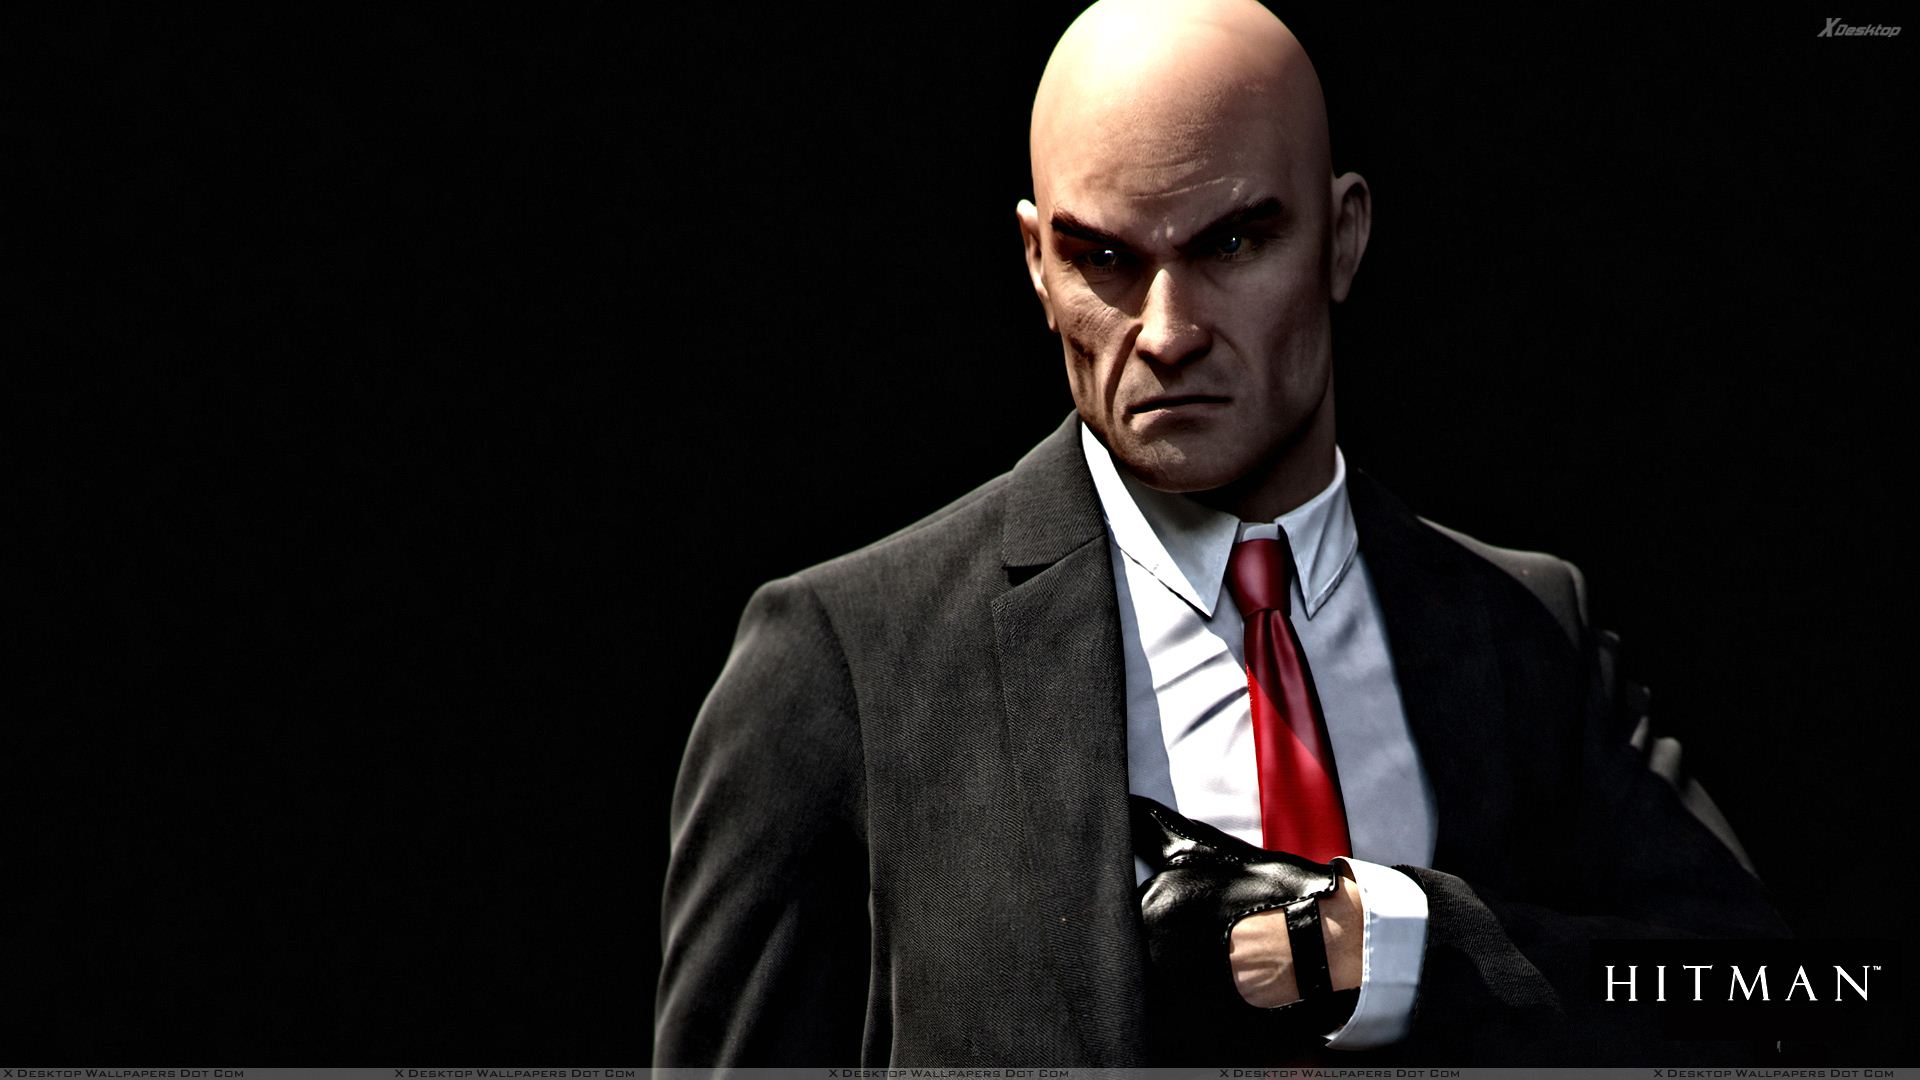 Hitman Absolution - Pulling The Gun Out